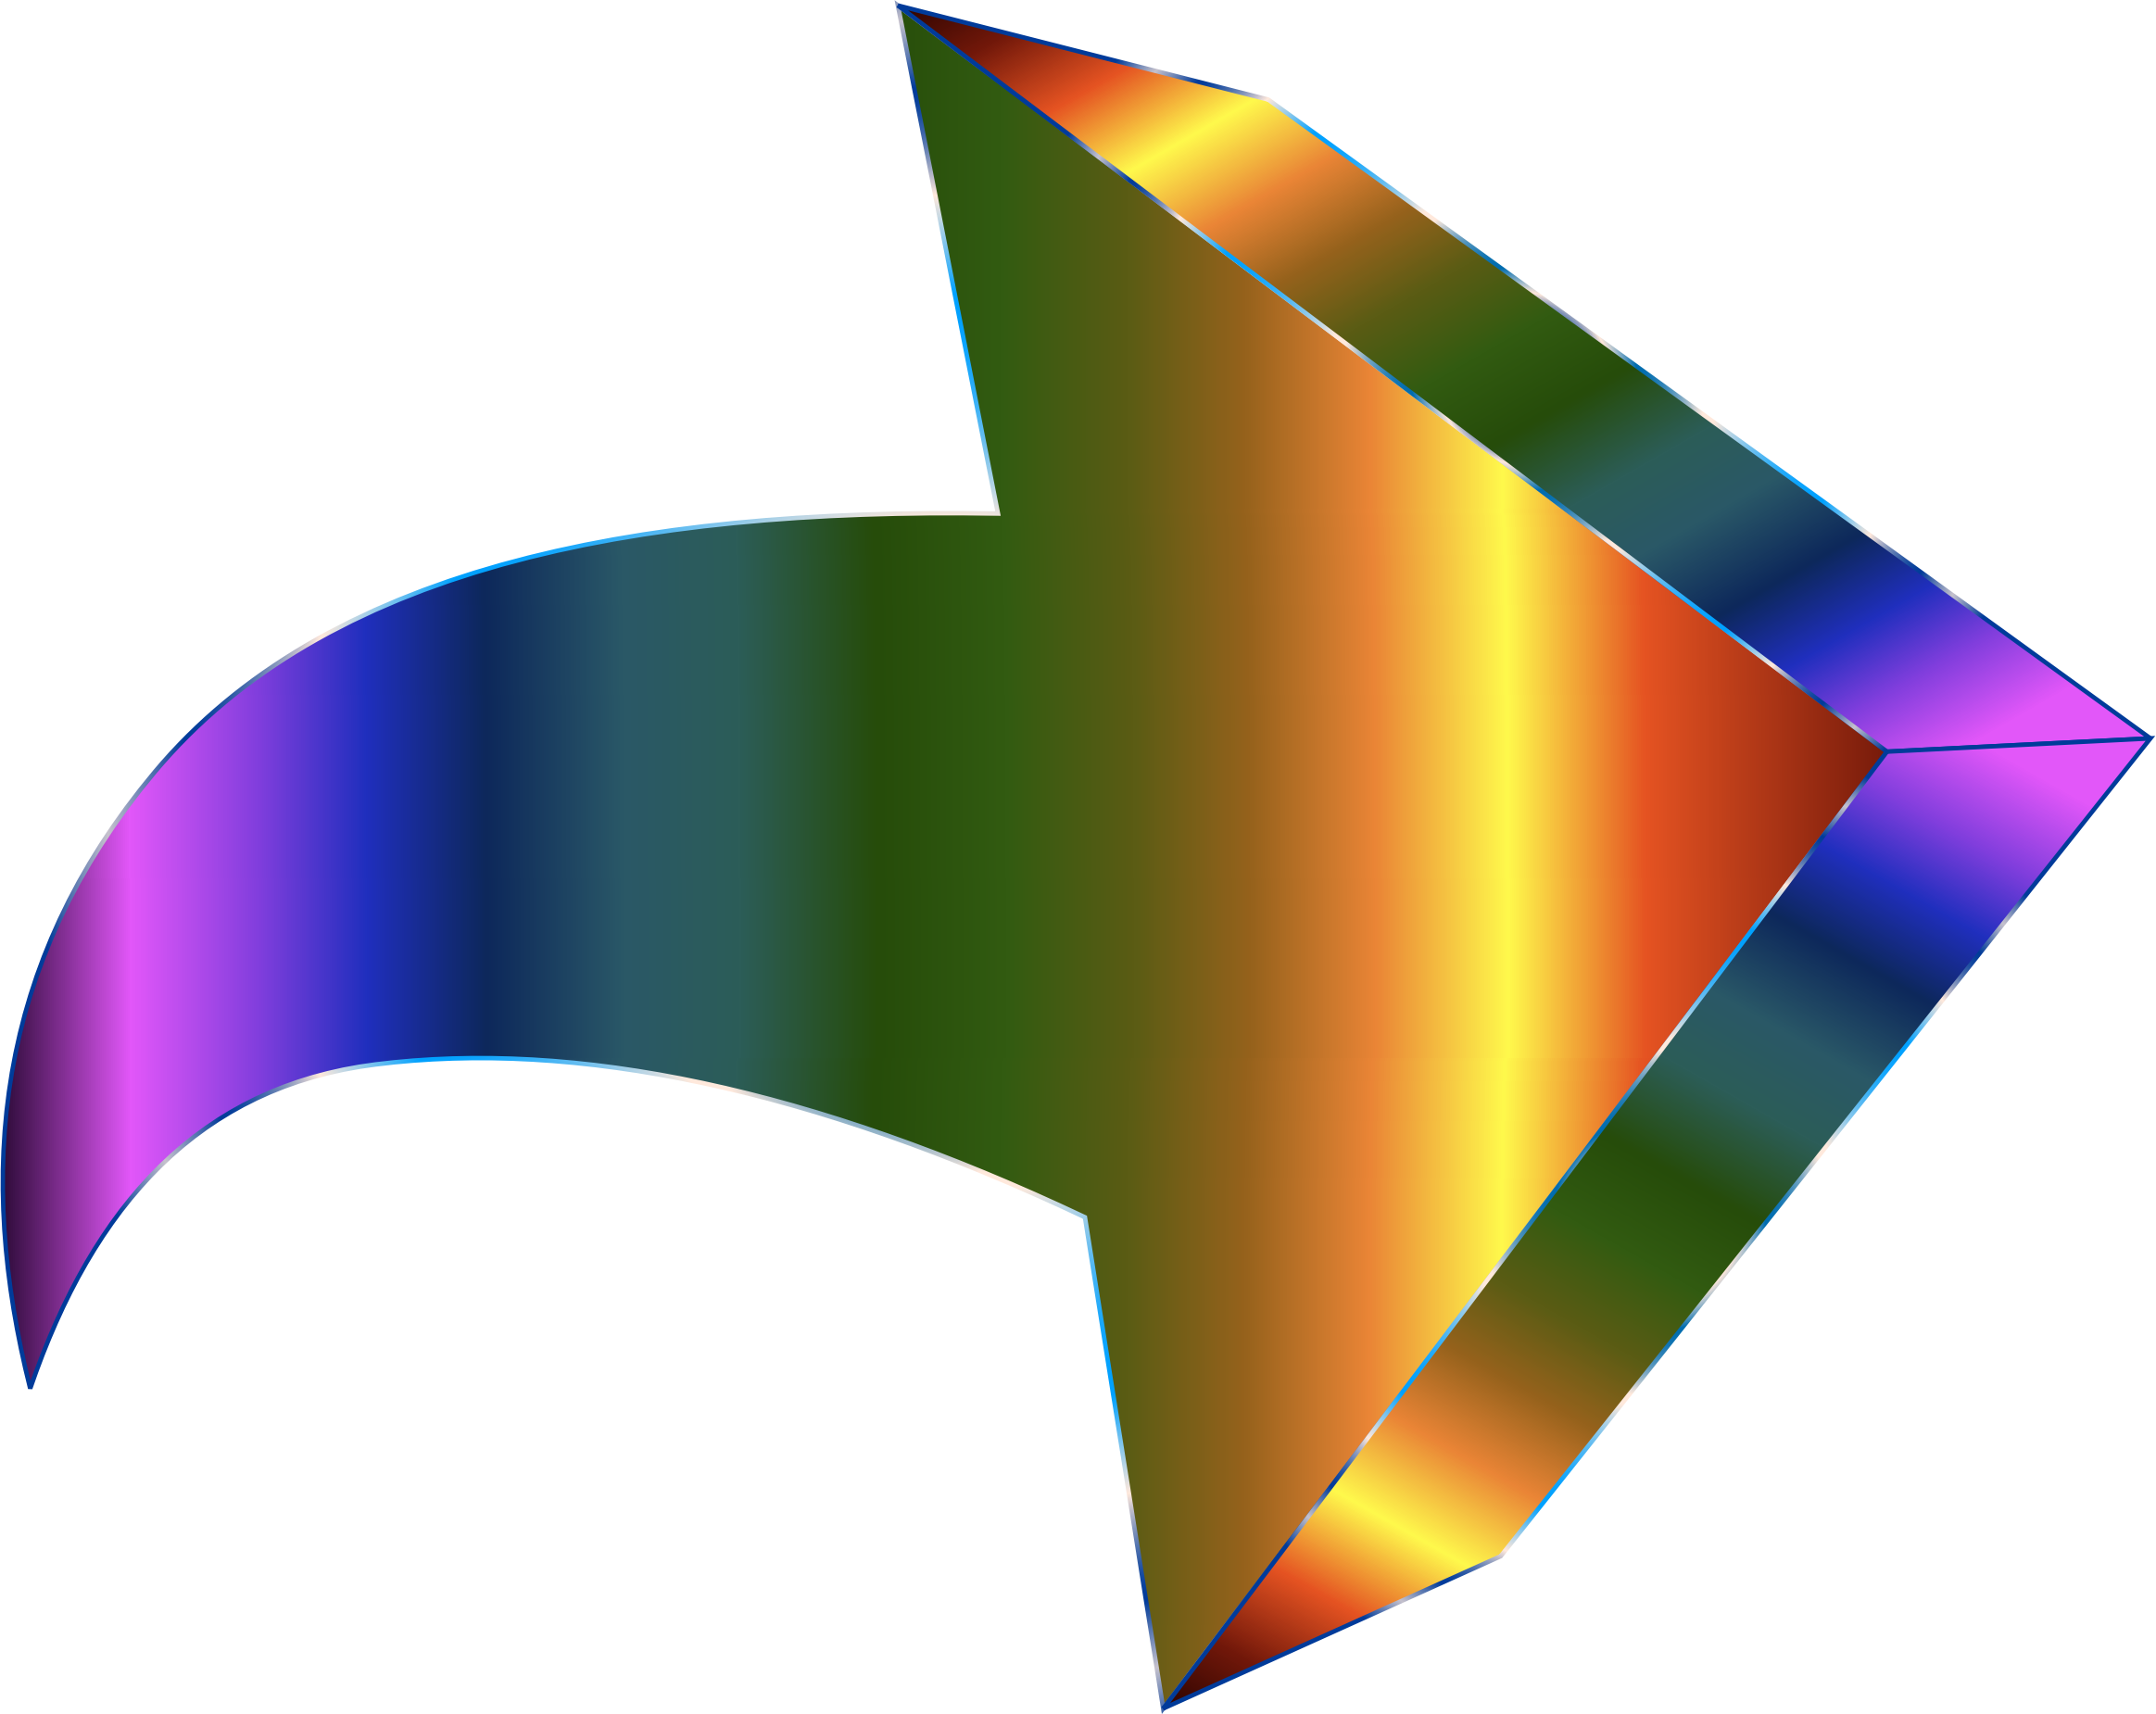 Prismatic 3D Arrow by GDJ